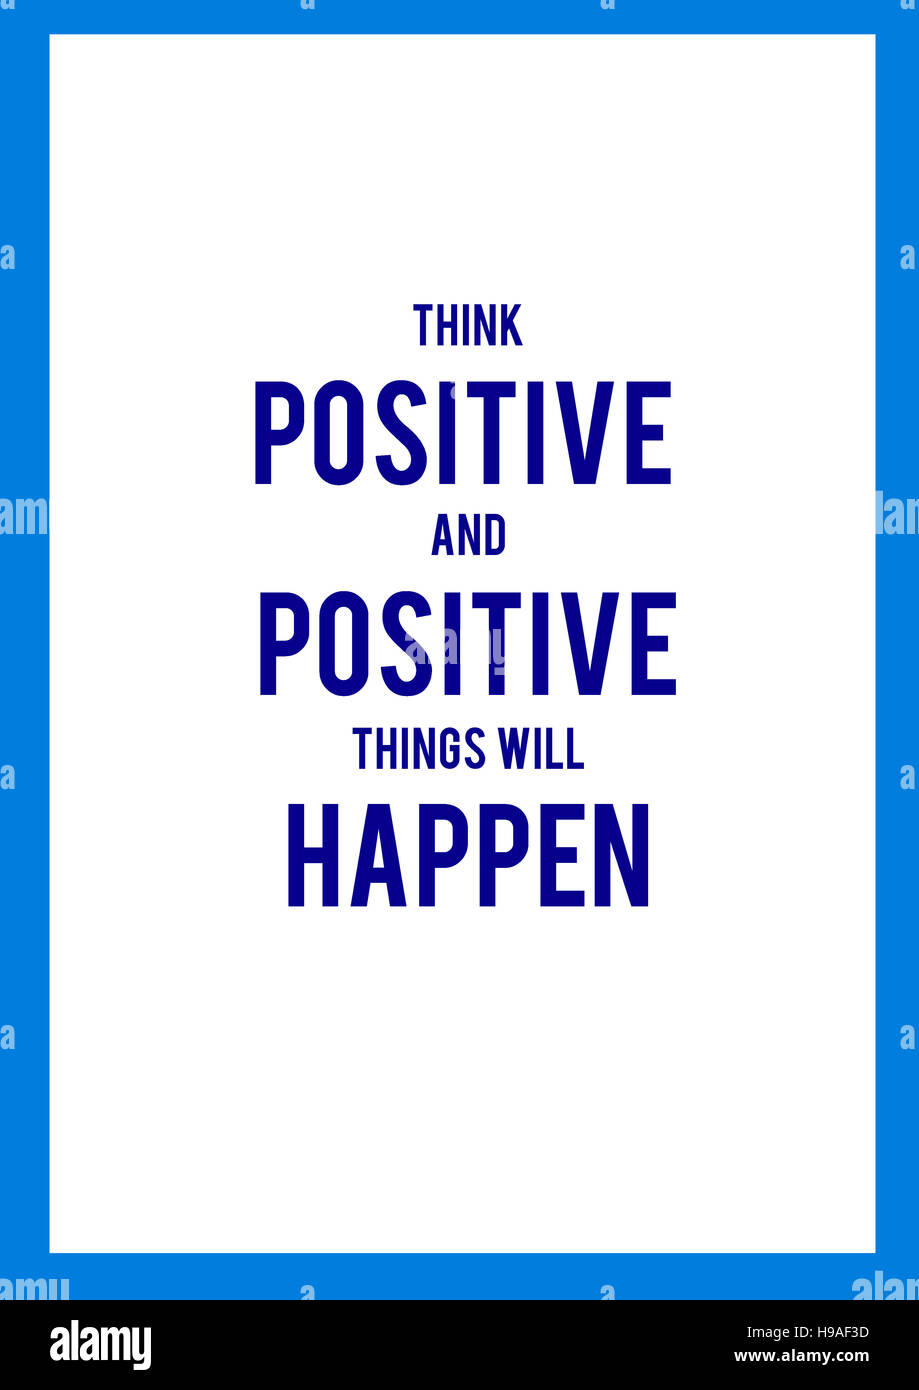 Think Positive And Positive Things Will Happen Background Texture